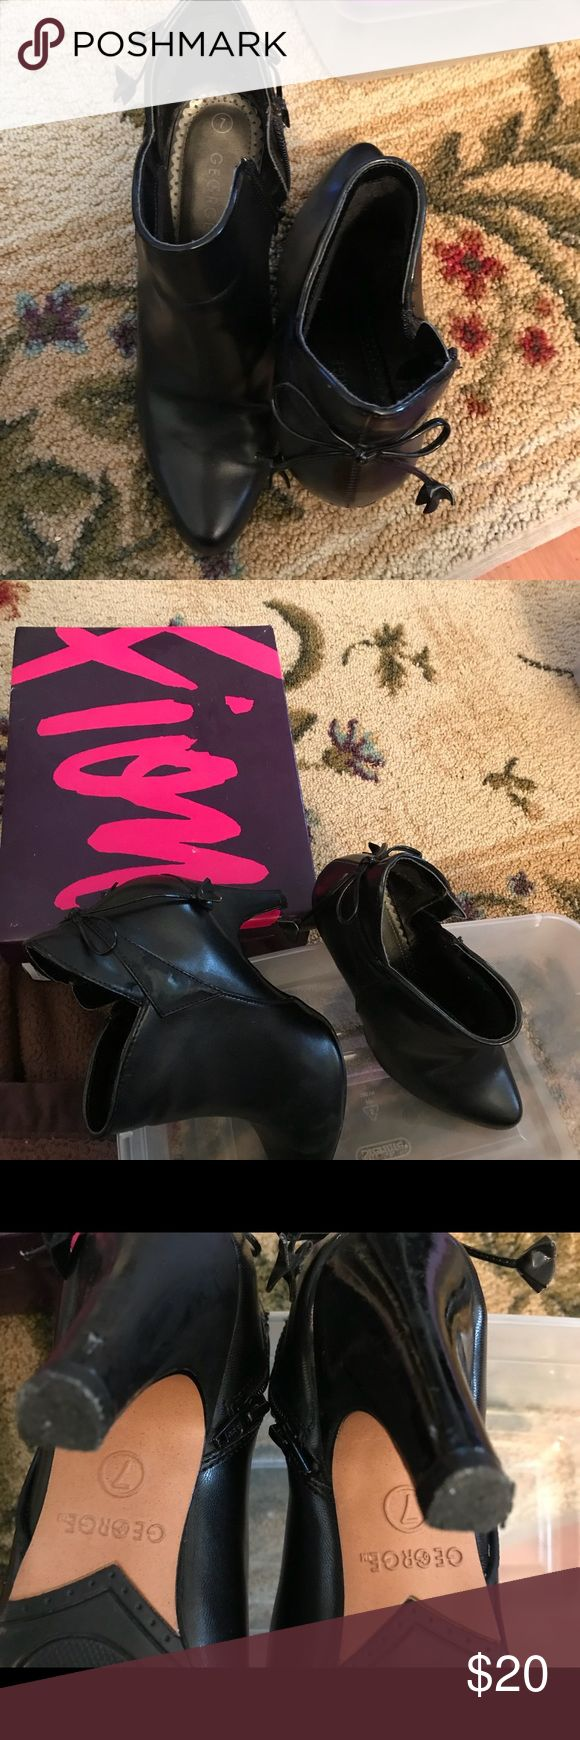 """Black boots Ladies black zipper ankle boots by George size 7 medium 2"""" heels George Shoes Ankle Boots & Booties"""